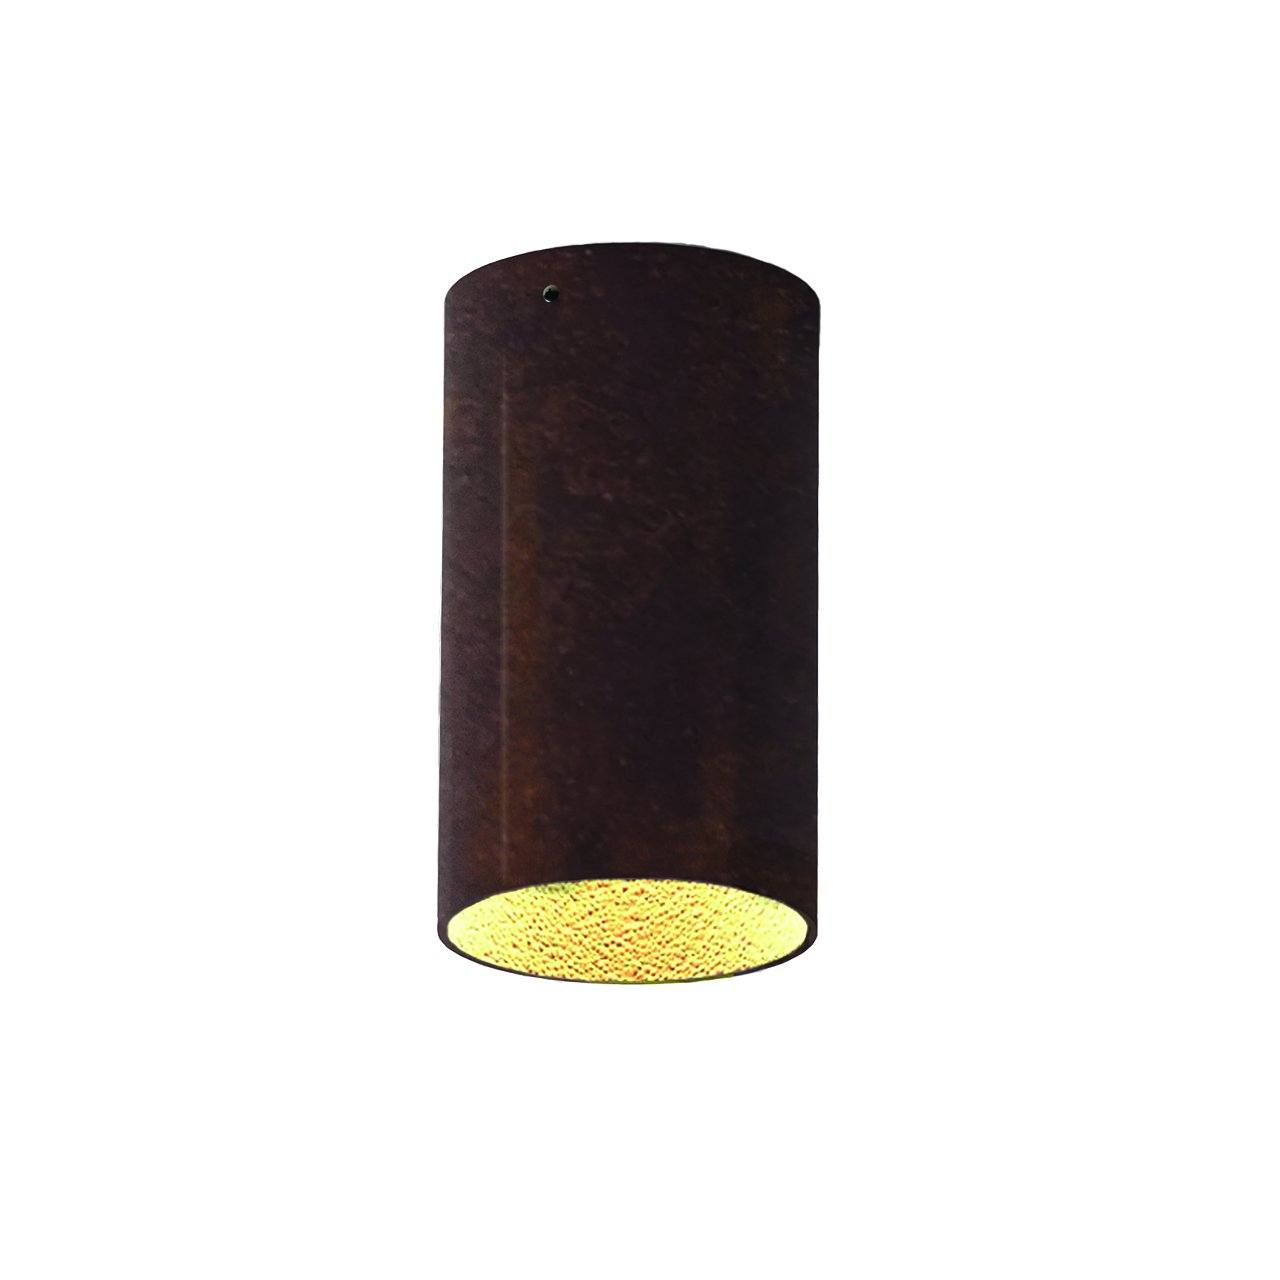 Roest Ceiling Light 20